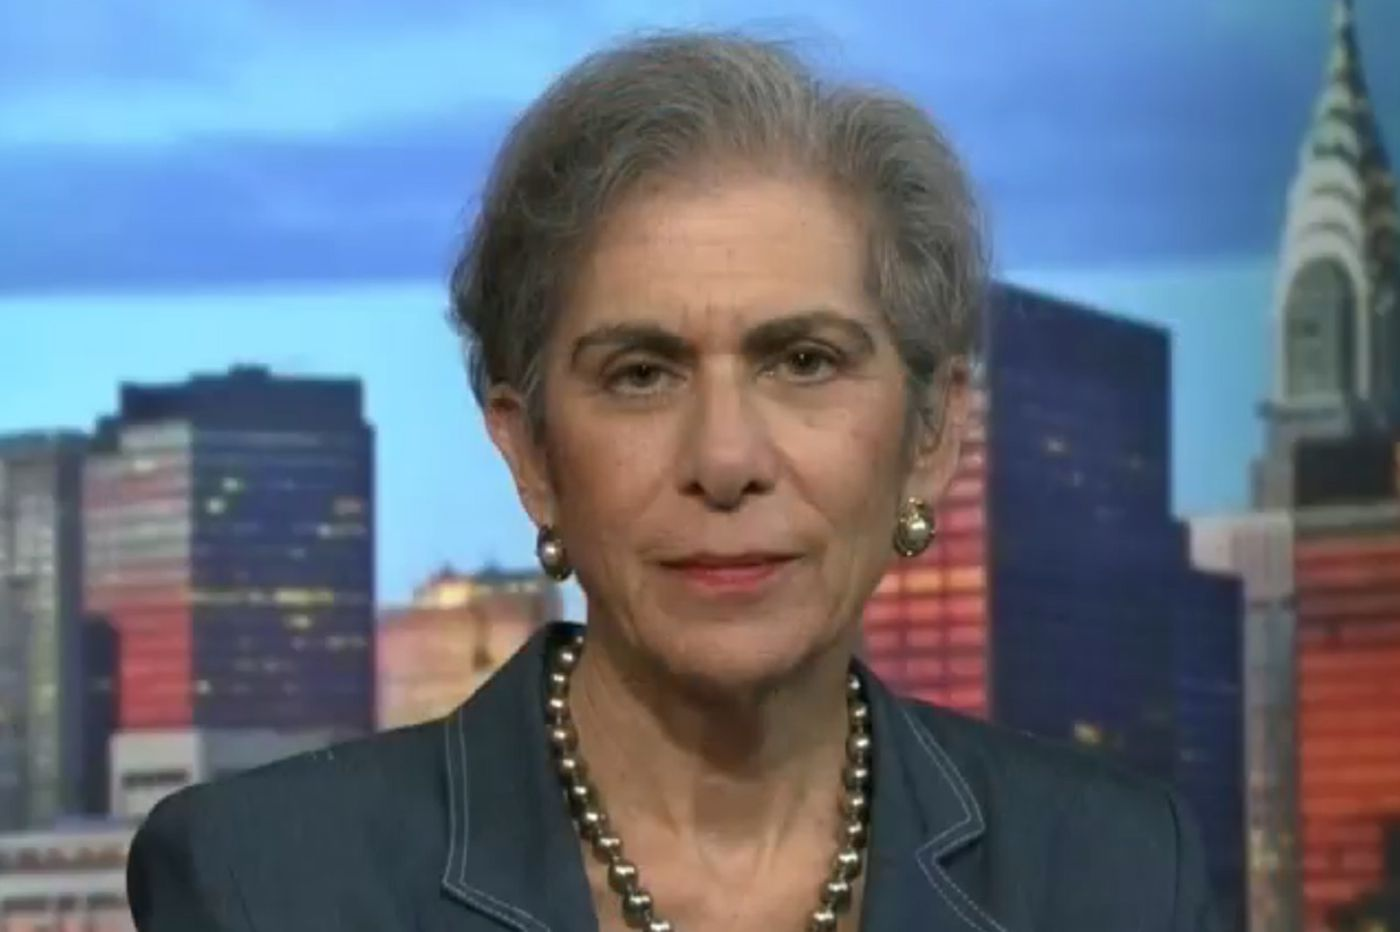 Penn Law professor Amy Wax under fire for remarks about race and immigration